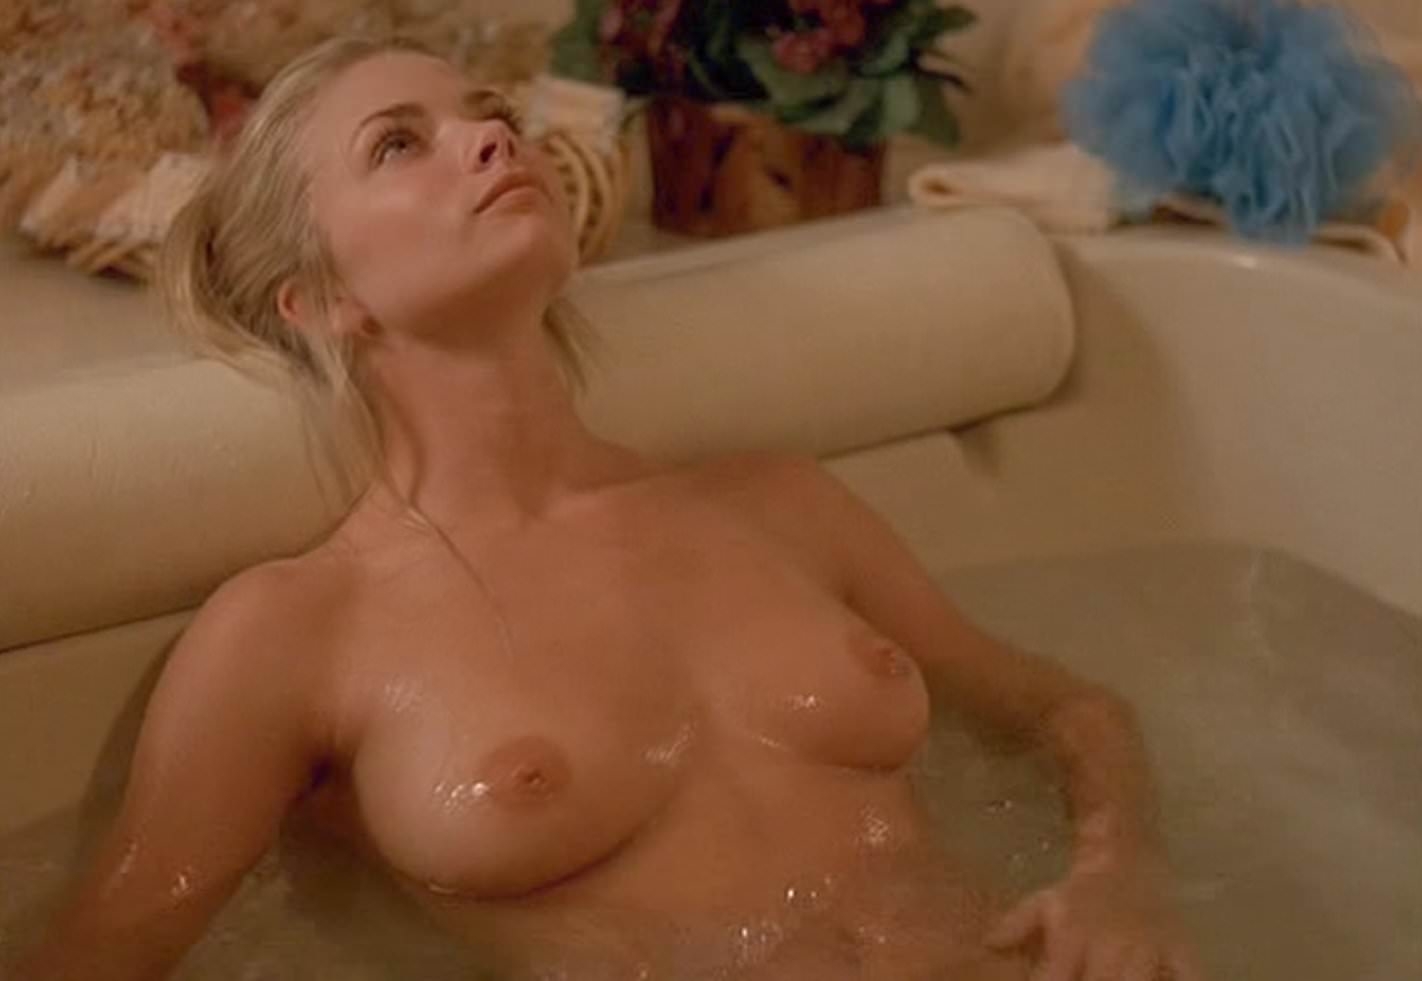 Jaime Pressly Nude Scene In Poison Ivy Movie-5455